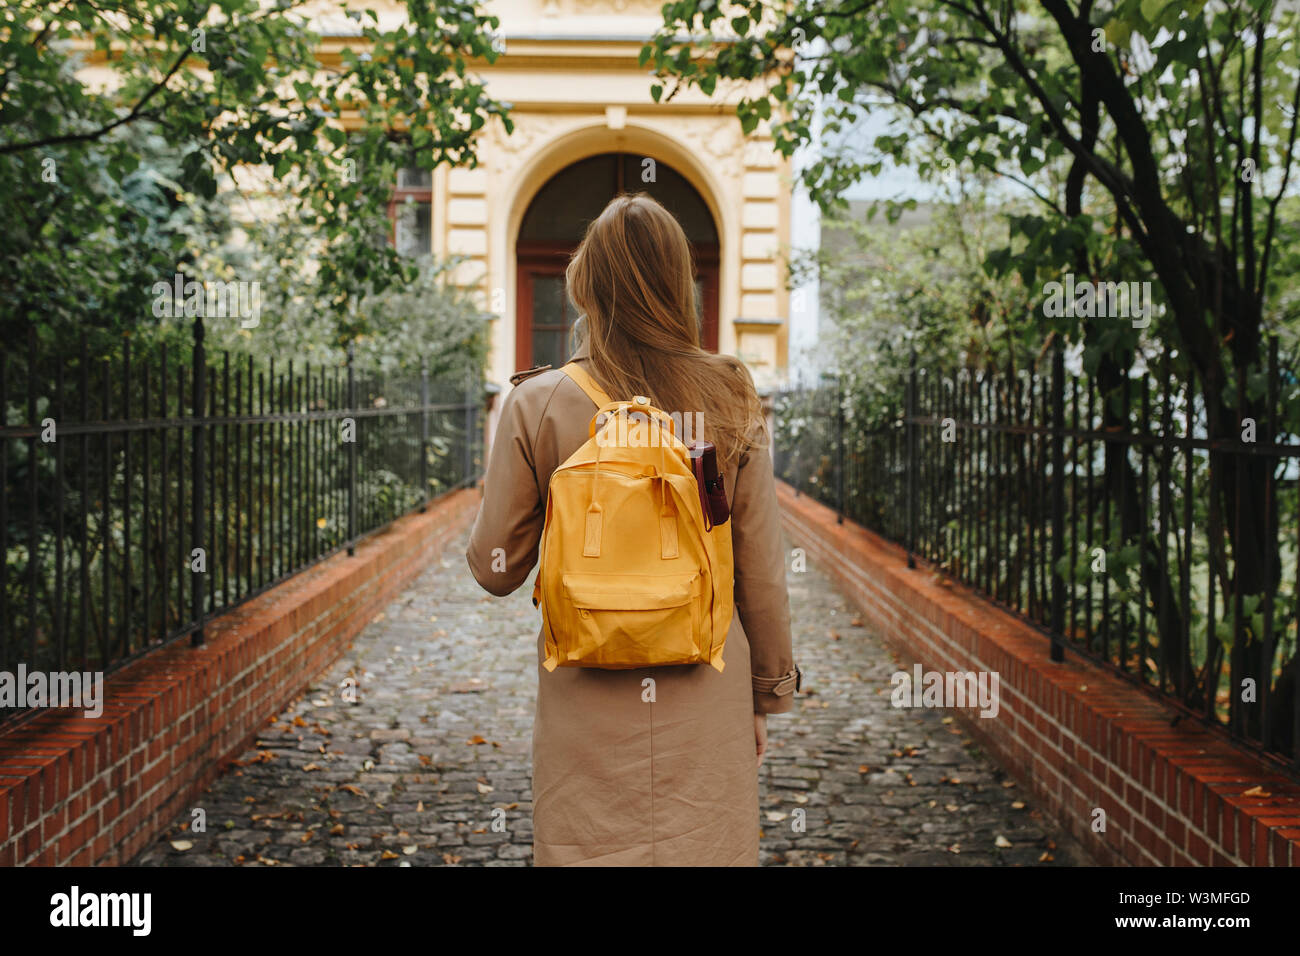 Young woman with yellow backpack walking in park - Stock Image